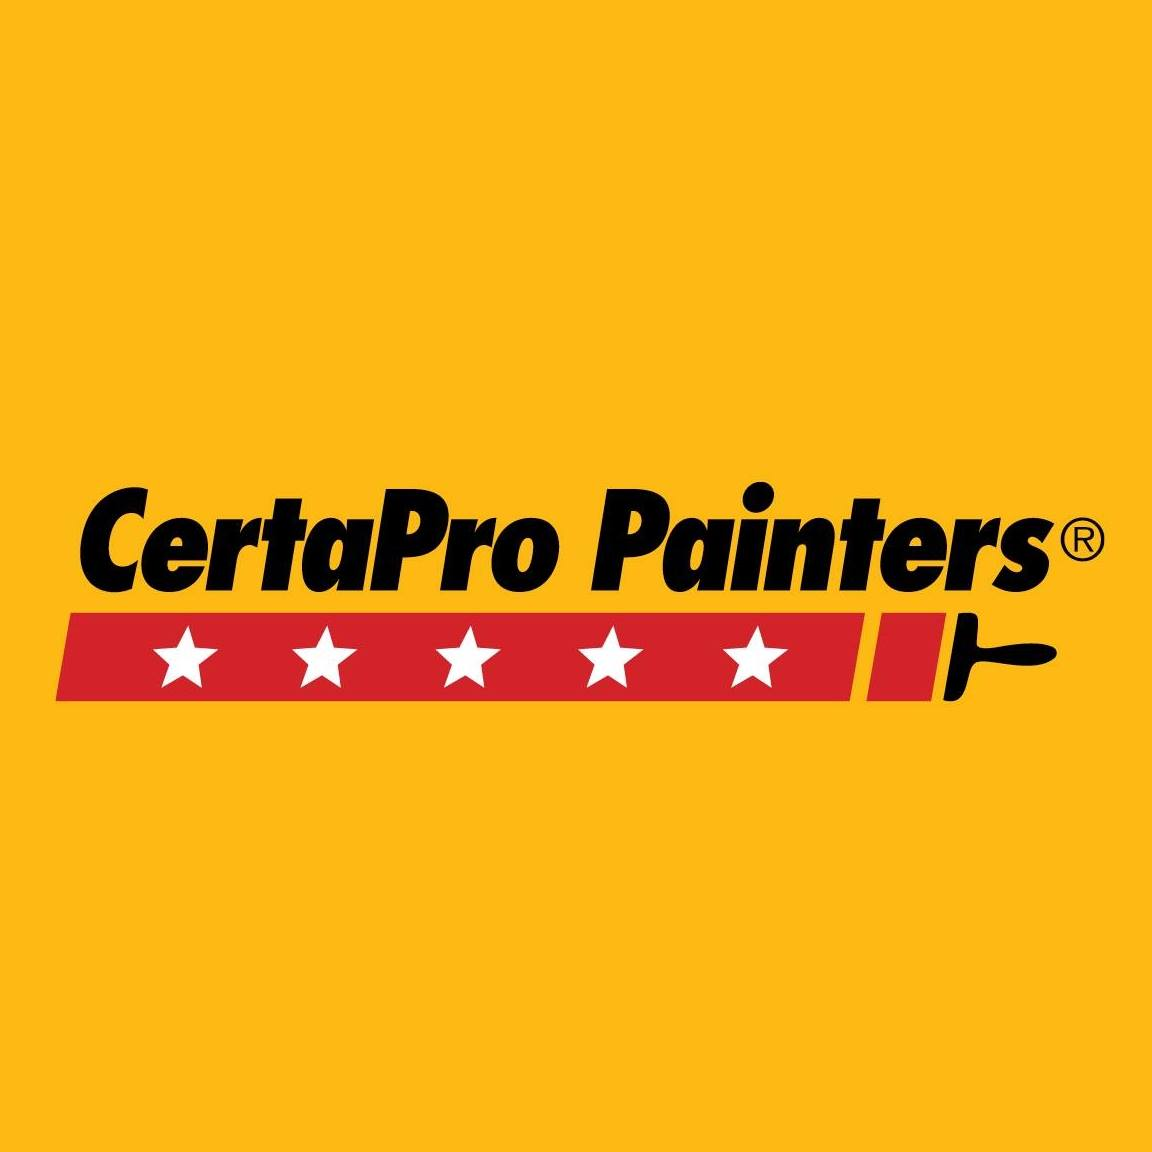 CertaPro Painters of the North Shore, IL